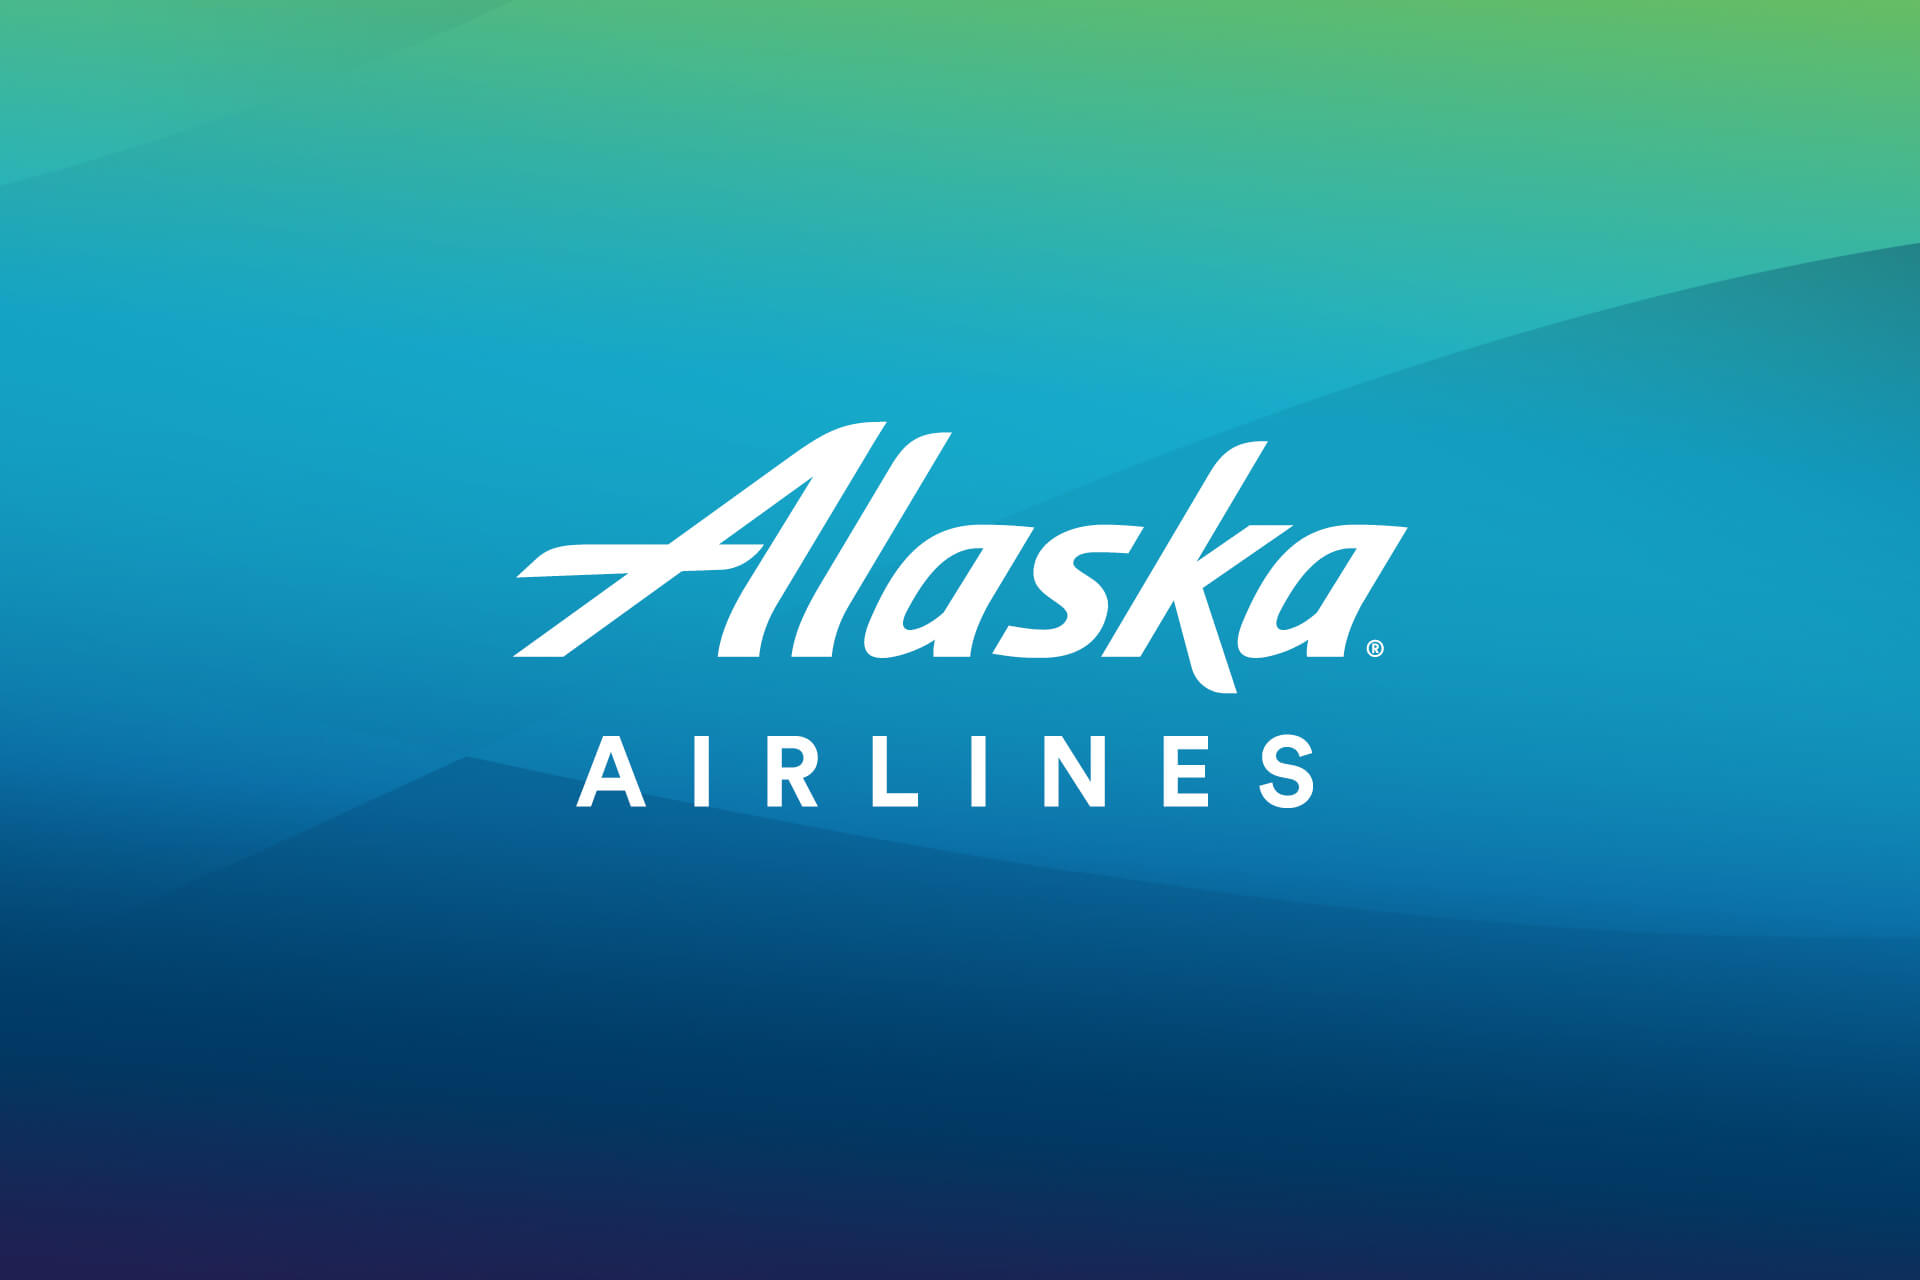 Alaska Airlines Logo - Alaska Airlines brand strategy, identity and experience design ...